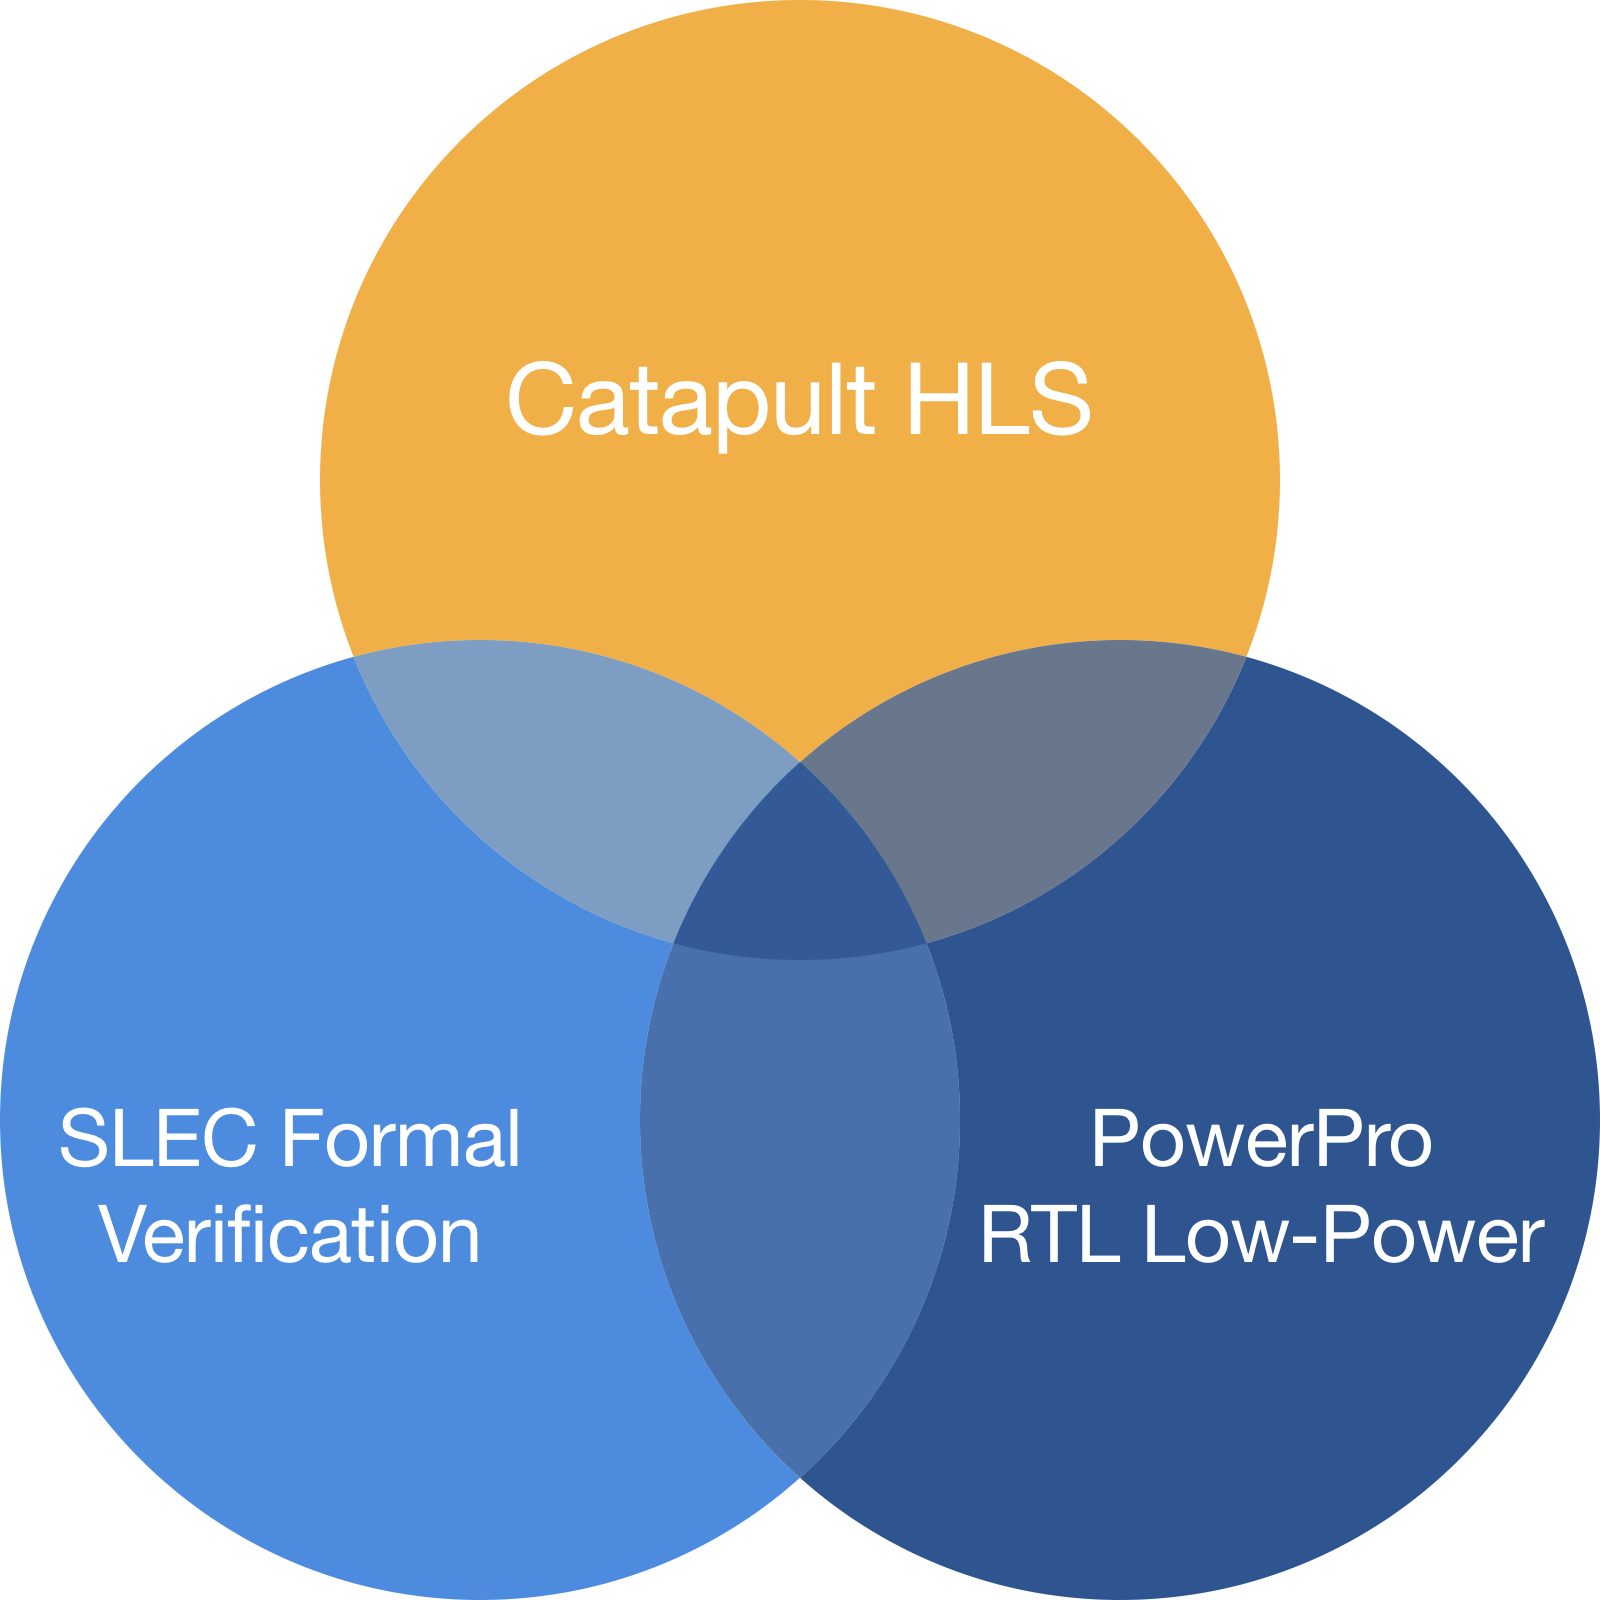 Catapult High Level Synthesis Platform